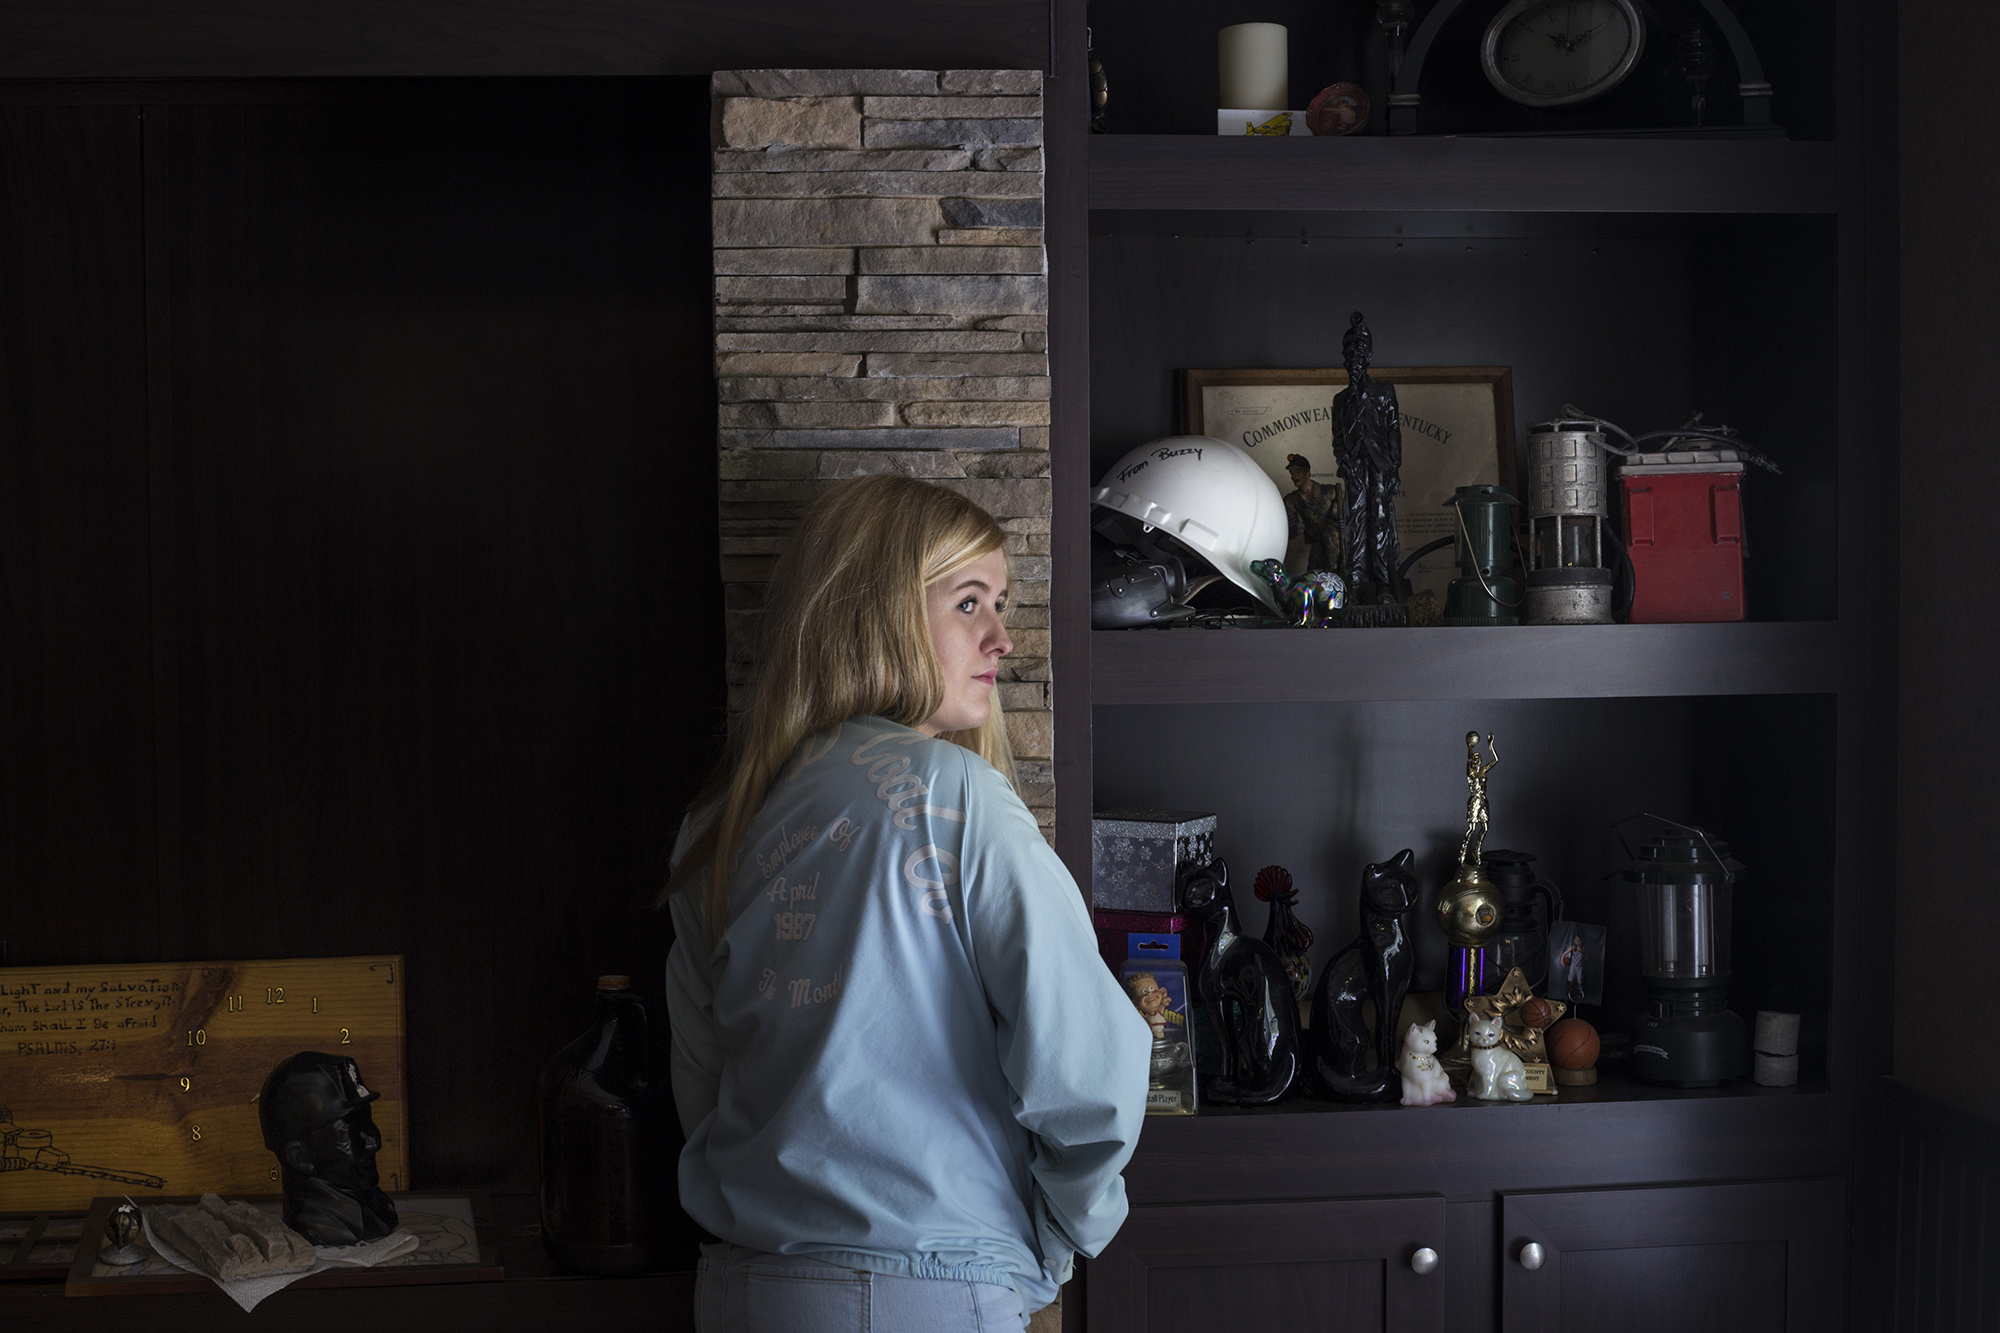 Lizzie Jones, 17, proudly wears her father's employee of the month jacket from his time working at the coal mines. She stands next to a shelf of her family's relics from the coal industry at her home in eastern Kentucky, on Sunday, September 24, 2017. Jones' father passed away from black lung disease in 2014. In January 2017, her mother, who also worked in the coal mining industry, passed away. Jones has developed a complex relationship with the coal industry that both built her community and stole her parent's life. (Brittany Greeson/GroundTruth)